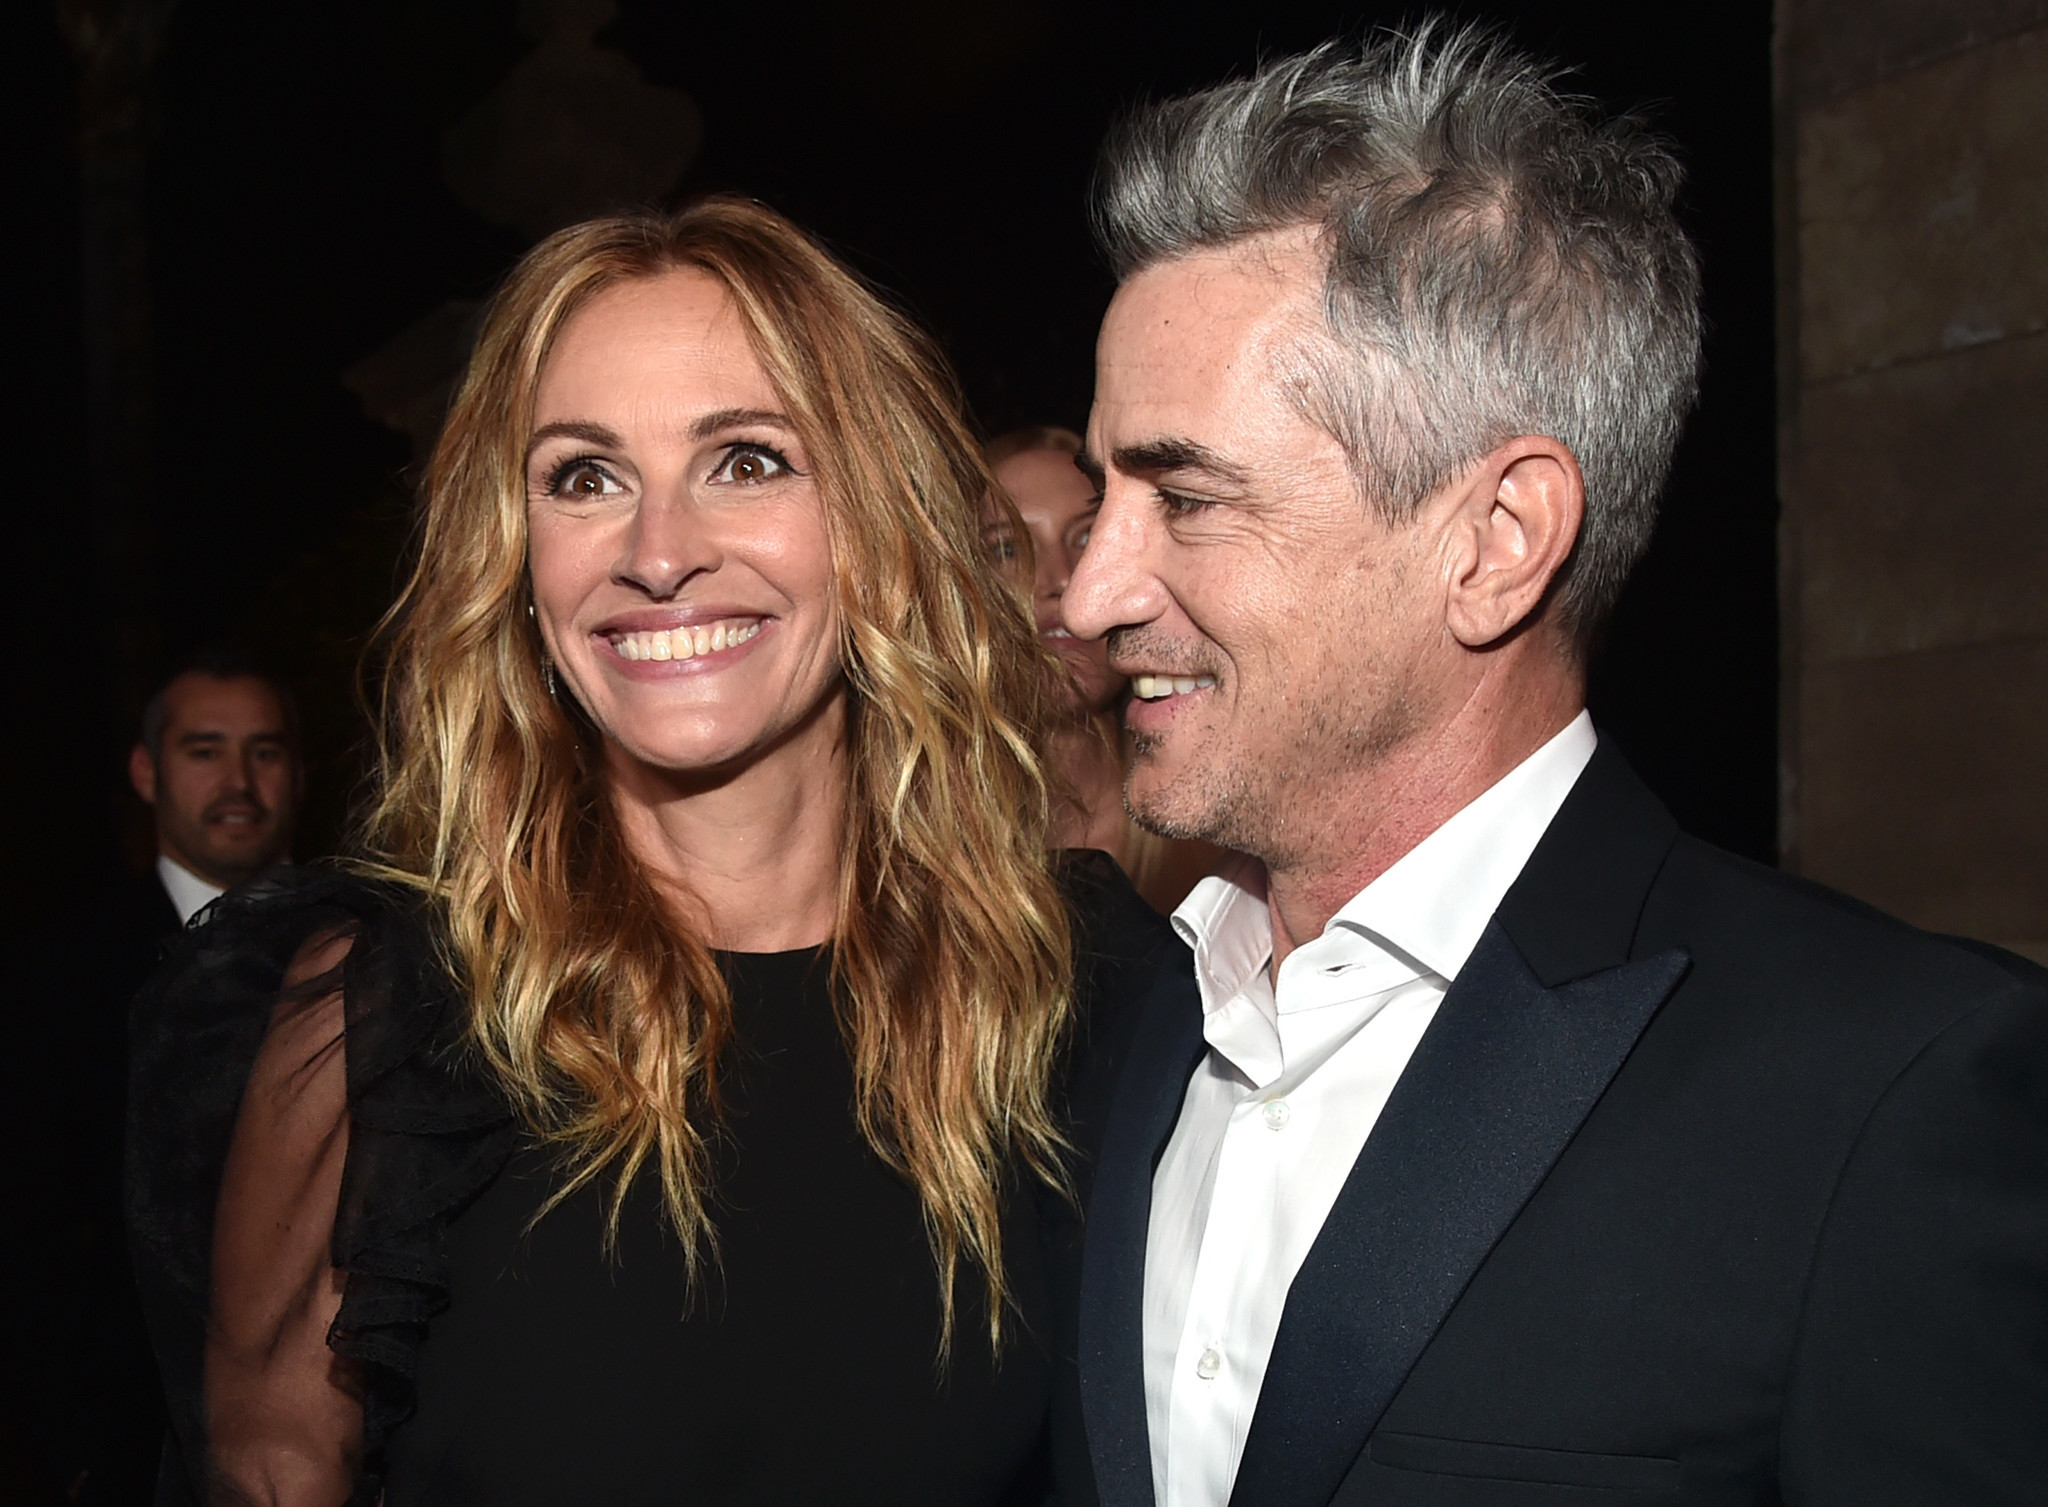 Honoree Julia Roberts and Dermot Mulroney at the amfAR Gala at Ron Burkle's Greenacres estate in Beverly Hills.